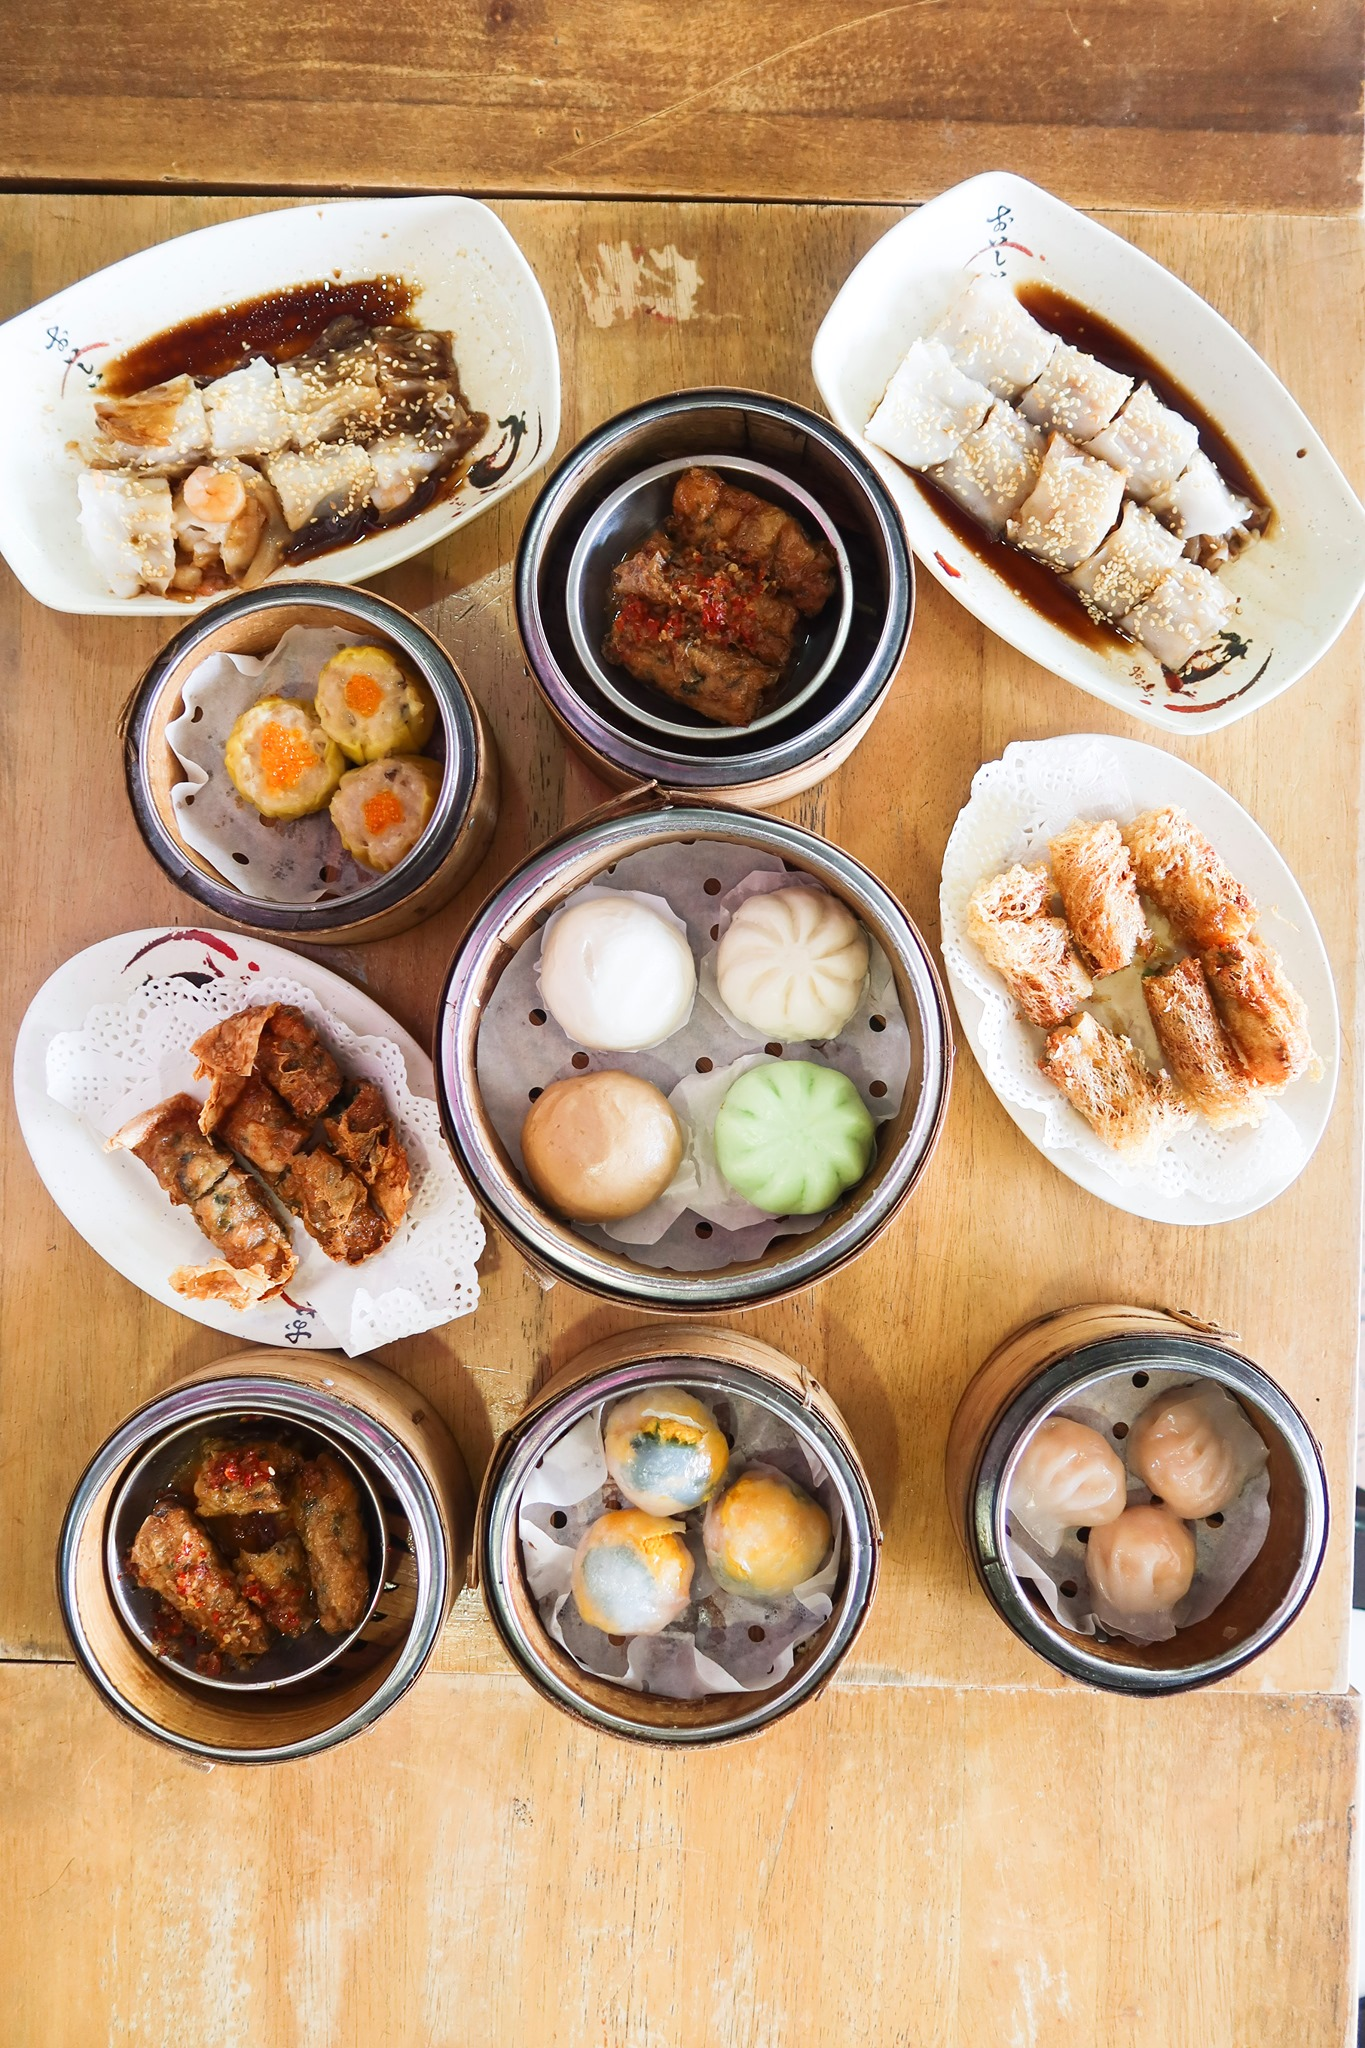 TANG TEAHOUSE deim sum delivery